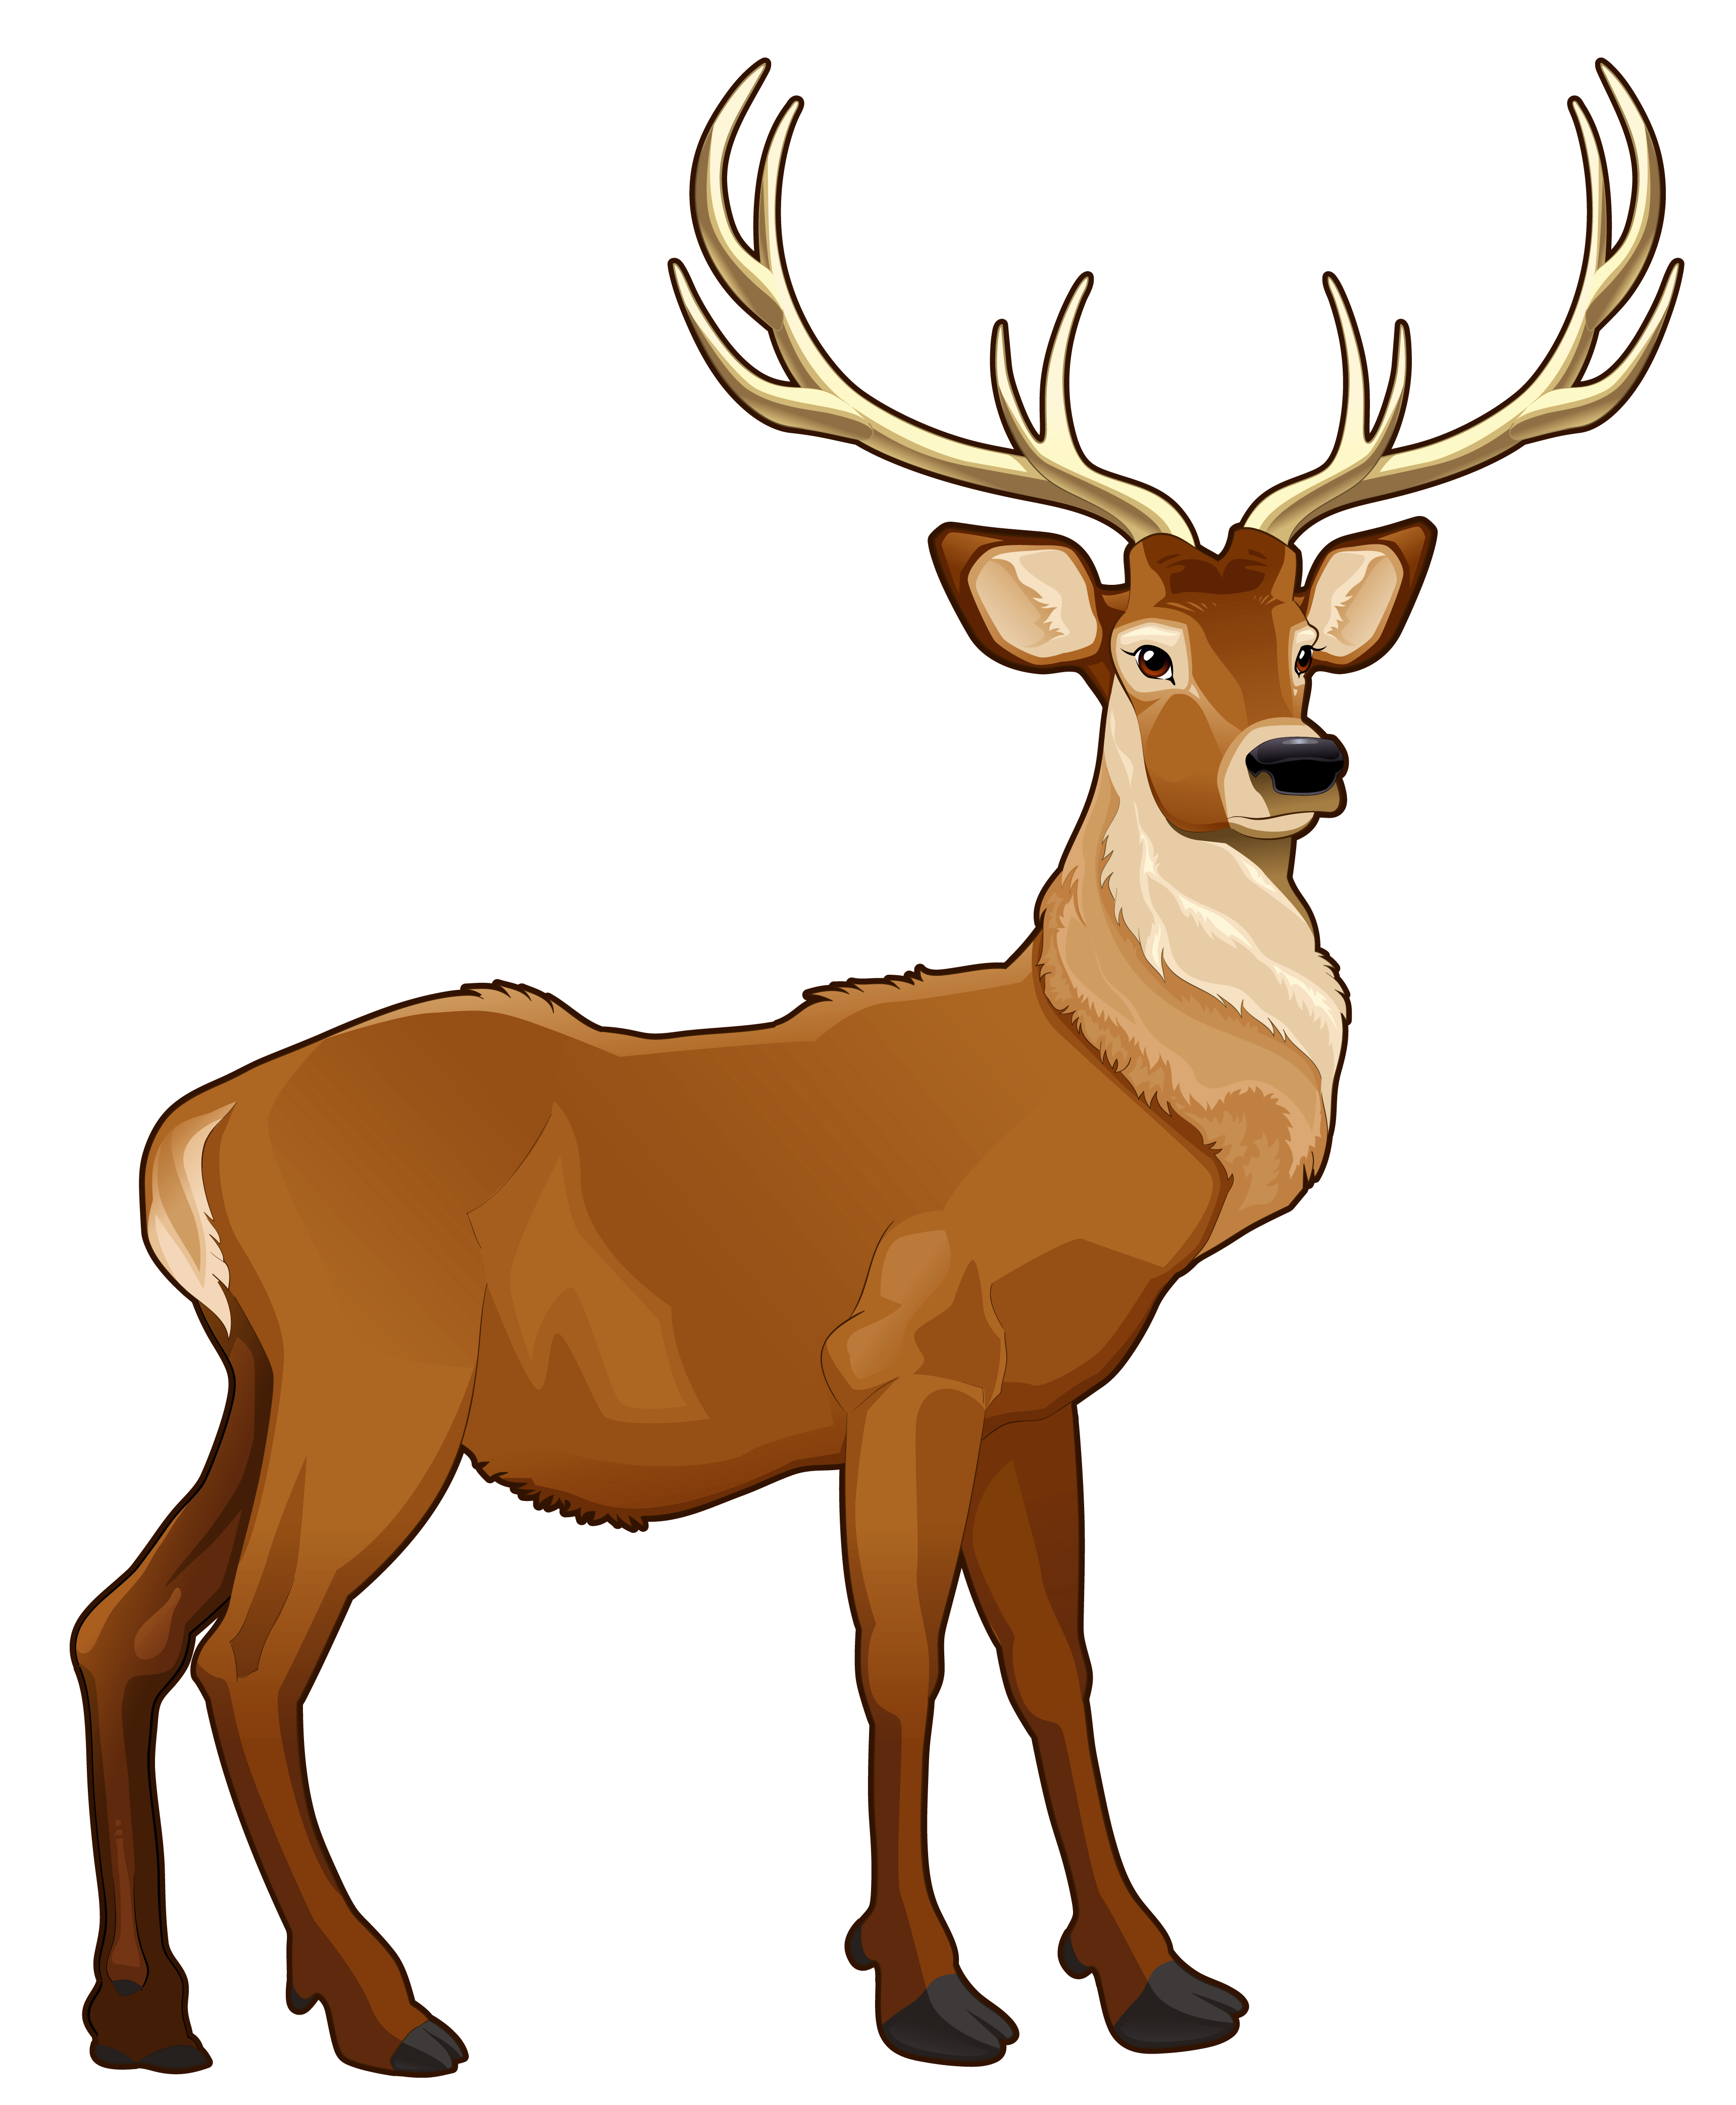 image freeuse Brown reindeer png picture. Dead clipart dead donkey